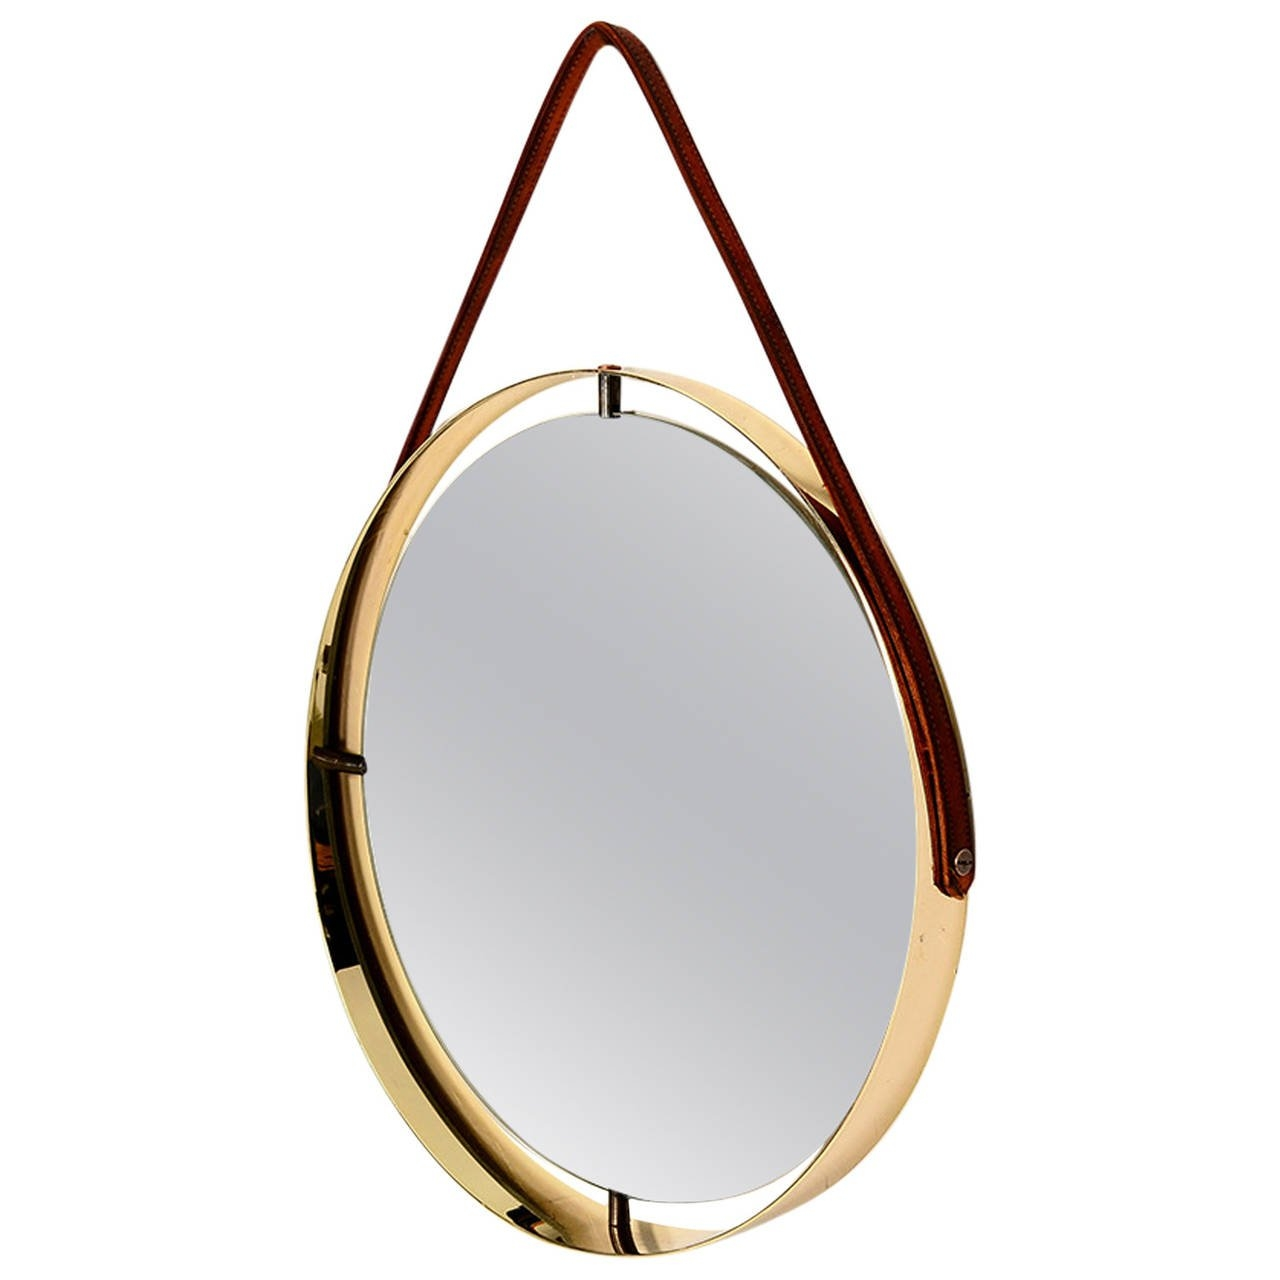 Round Mirror With Leather Strap For Sale At 1stdibs Throughout Round Leather Mirror (View 6 of 15)